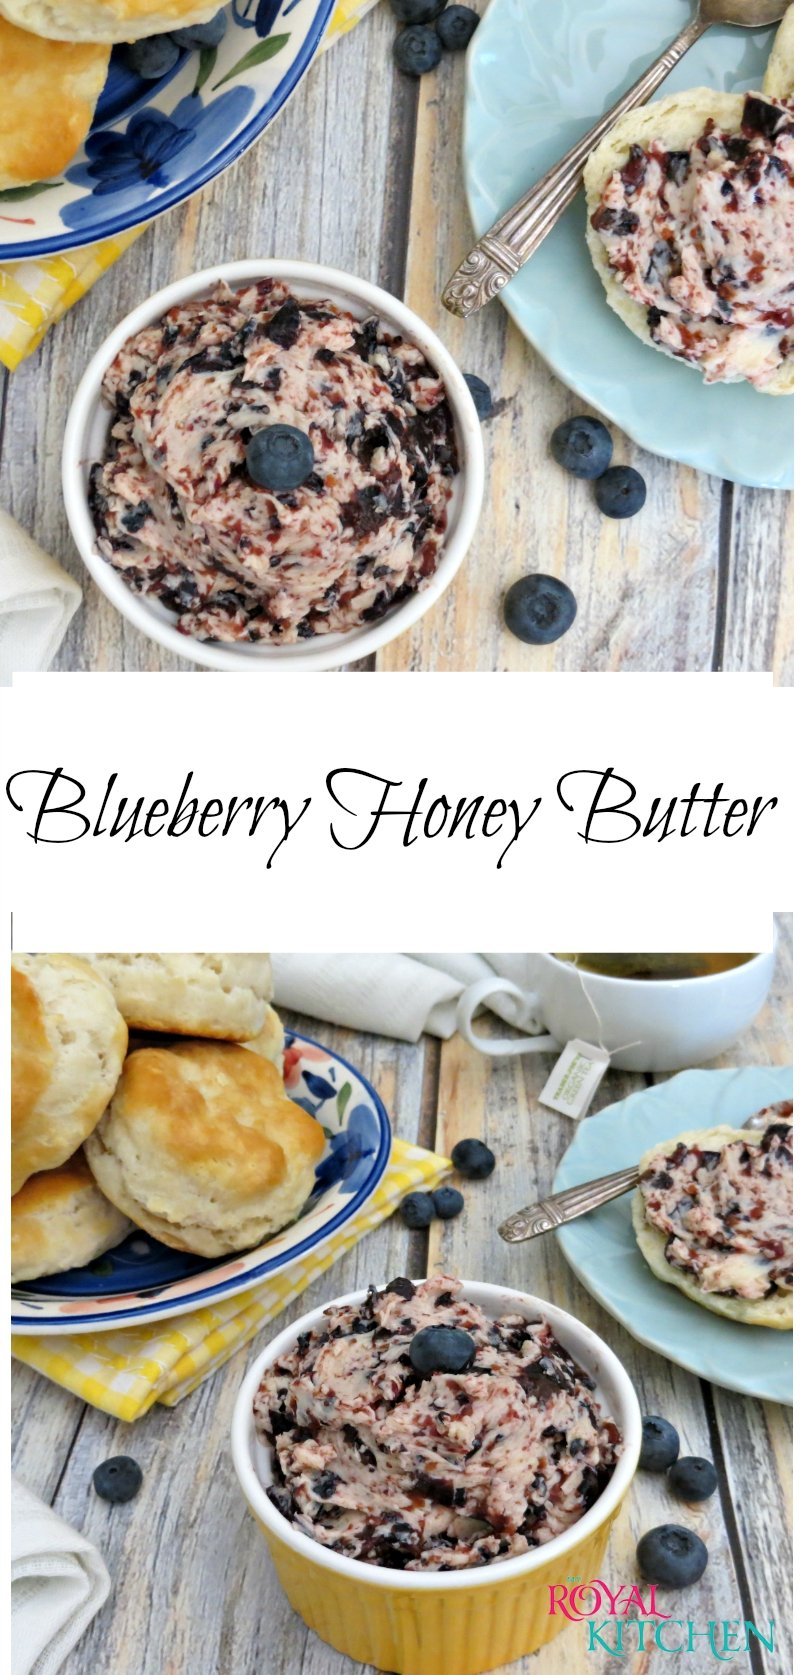 Blueberry Honey Butter